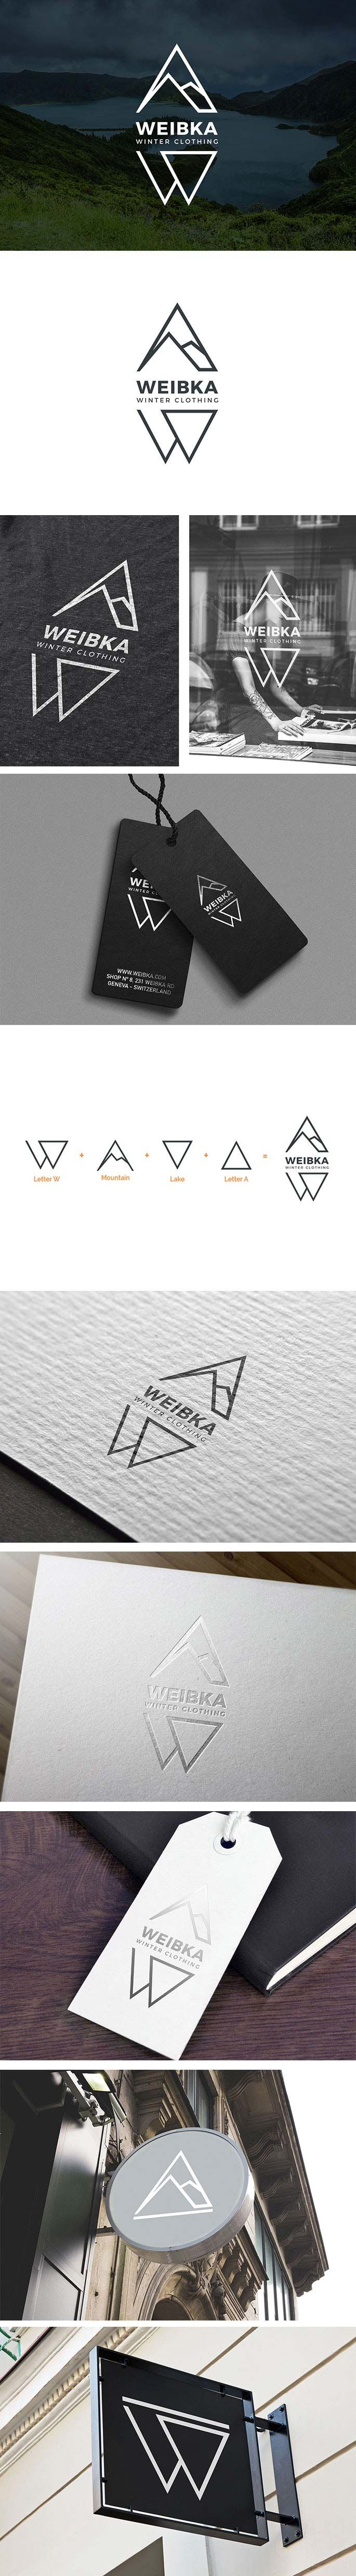 Weibka Winter Clothing Logo Design, Fashion & Sport Brand Identity | Letter W, Letter A, Geometric, Triangle, mountain, lake, mark, branding | Weibka, Geneva Switzerland | Celine Le Duigou, Freelance Graphic Designer, Perth Australia